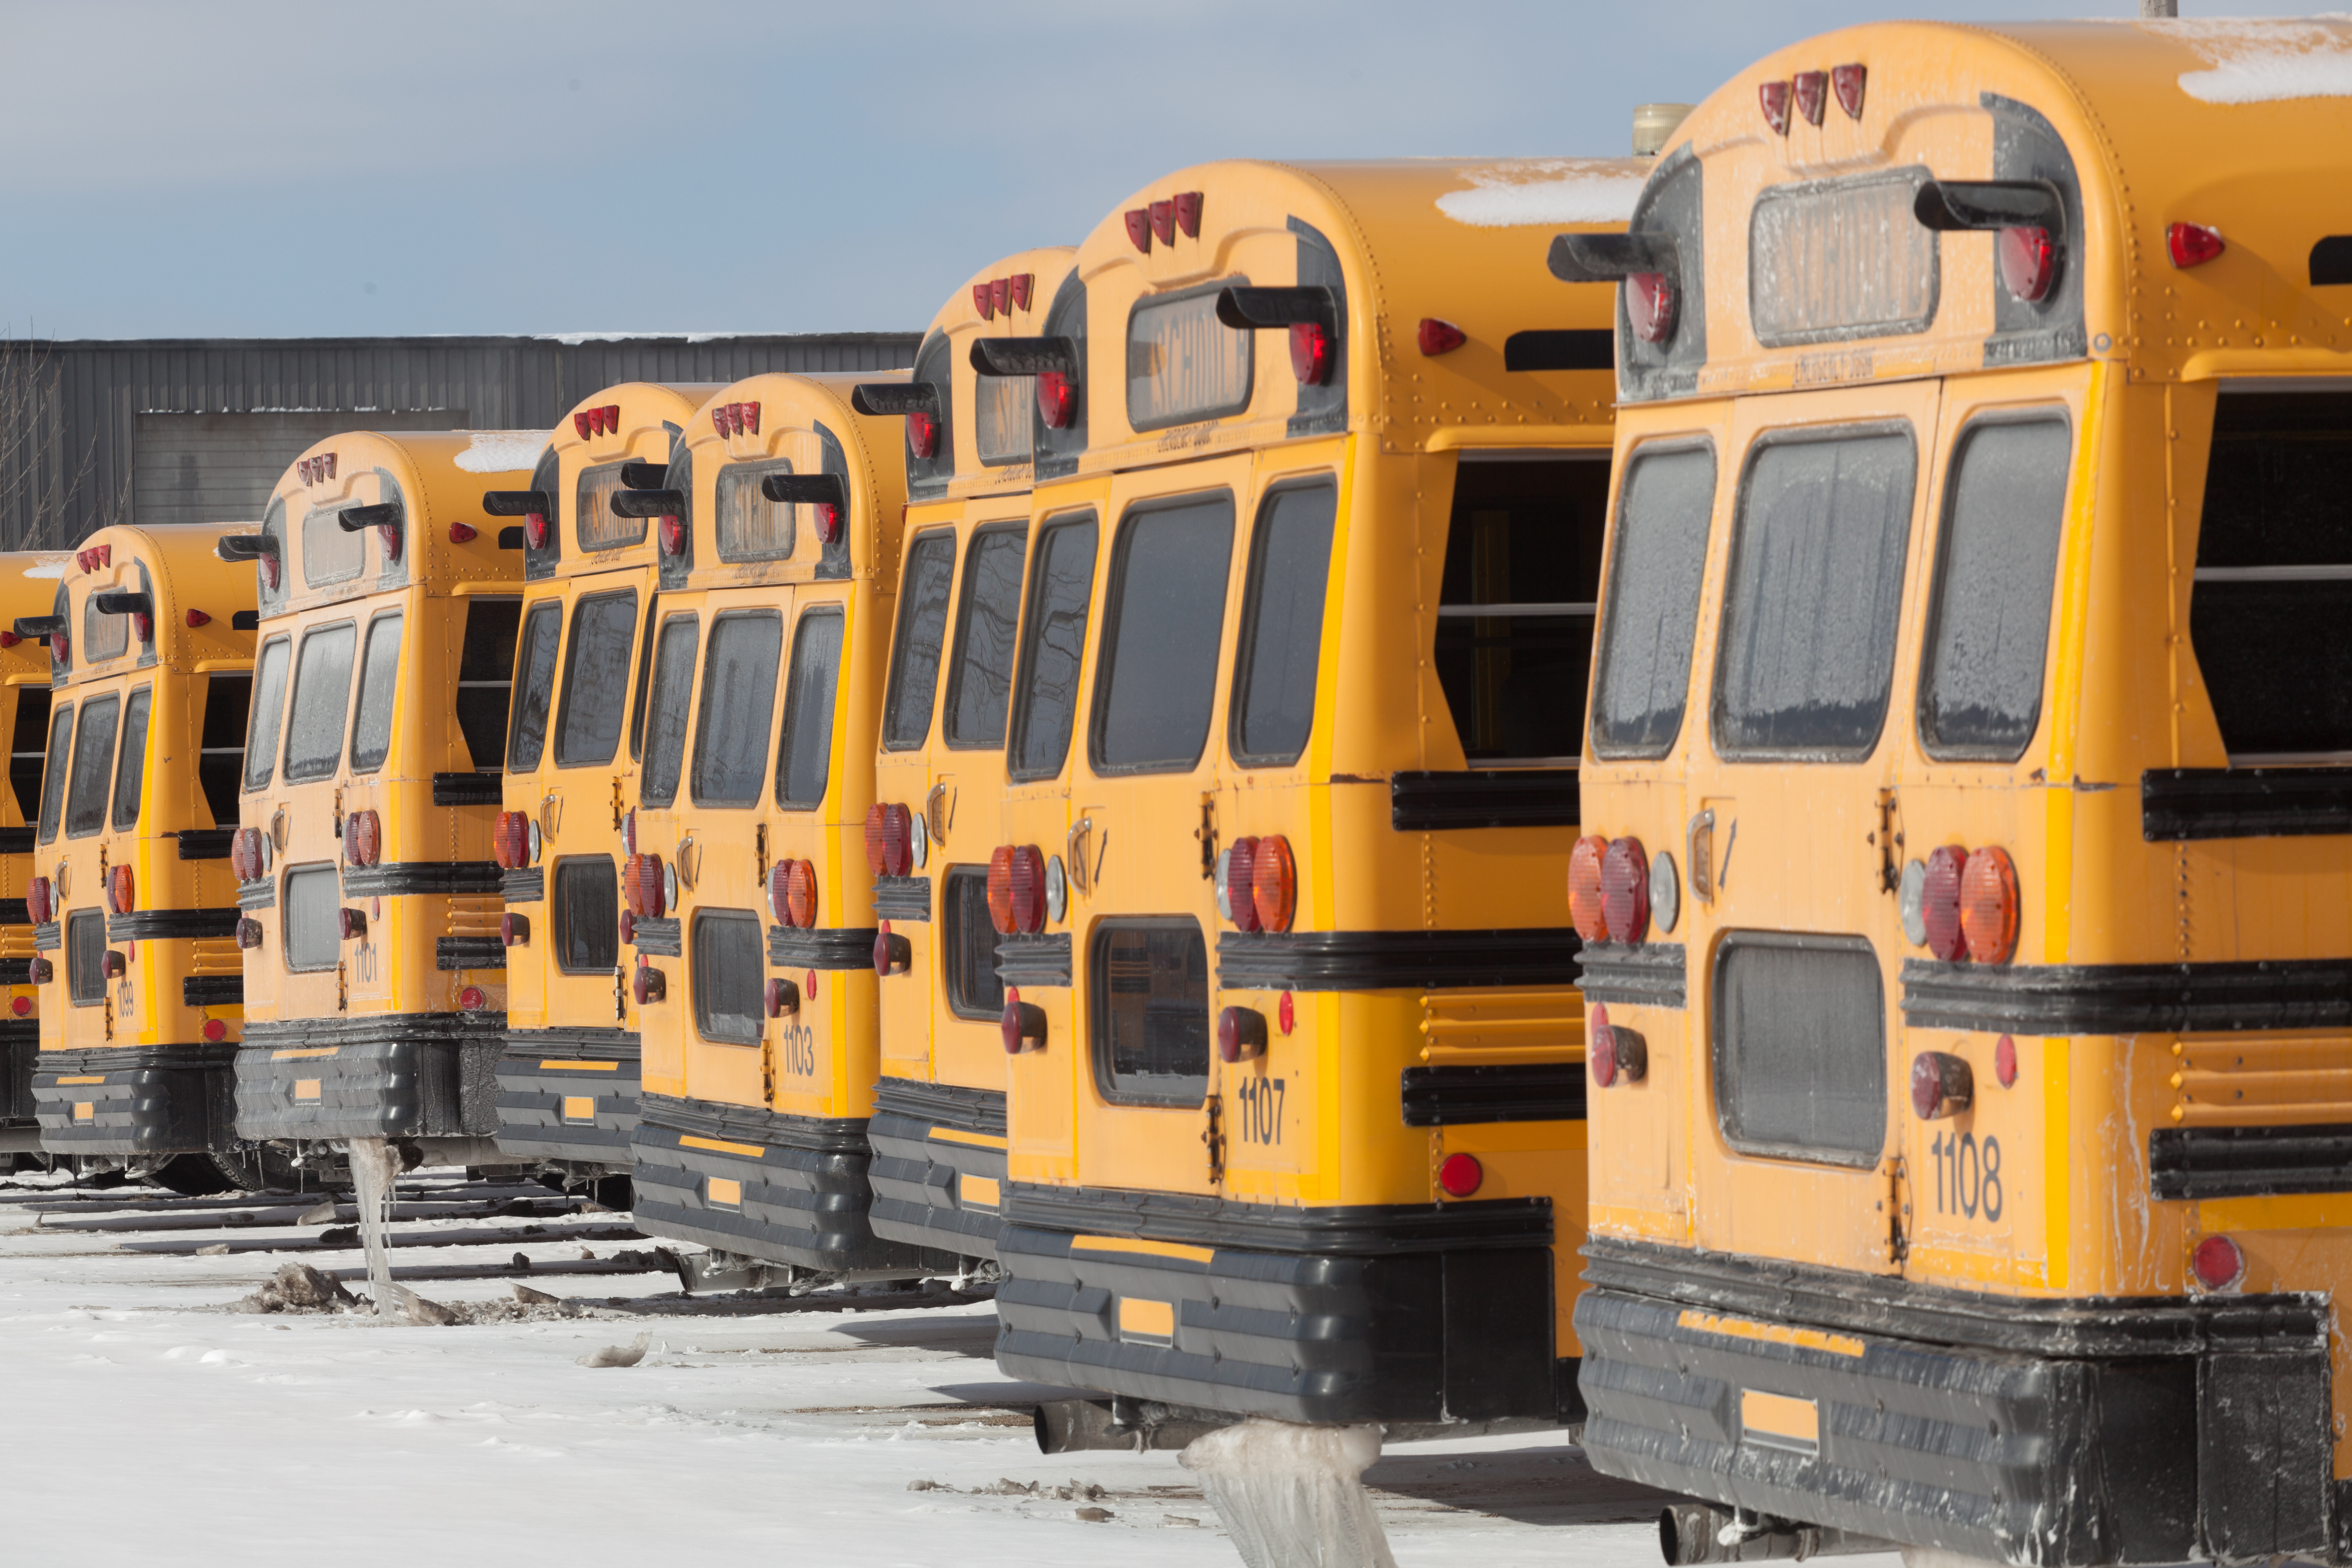 American yellow style school buses in winter